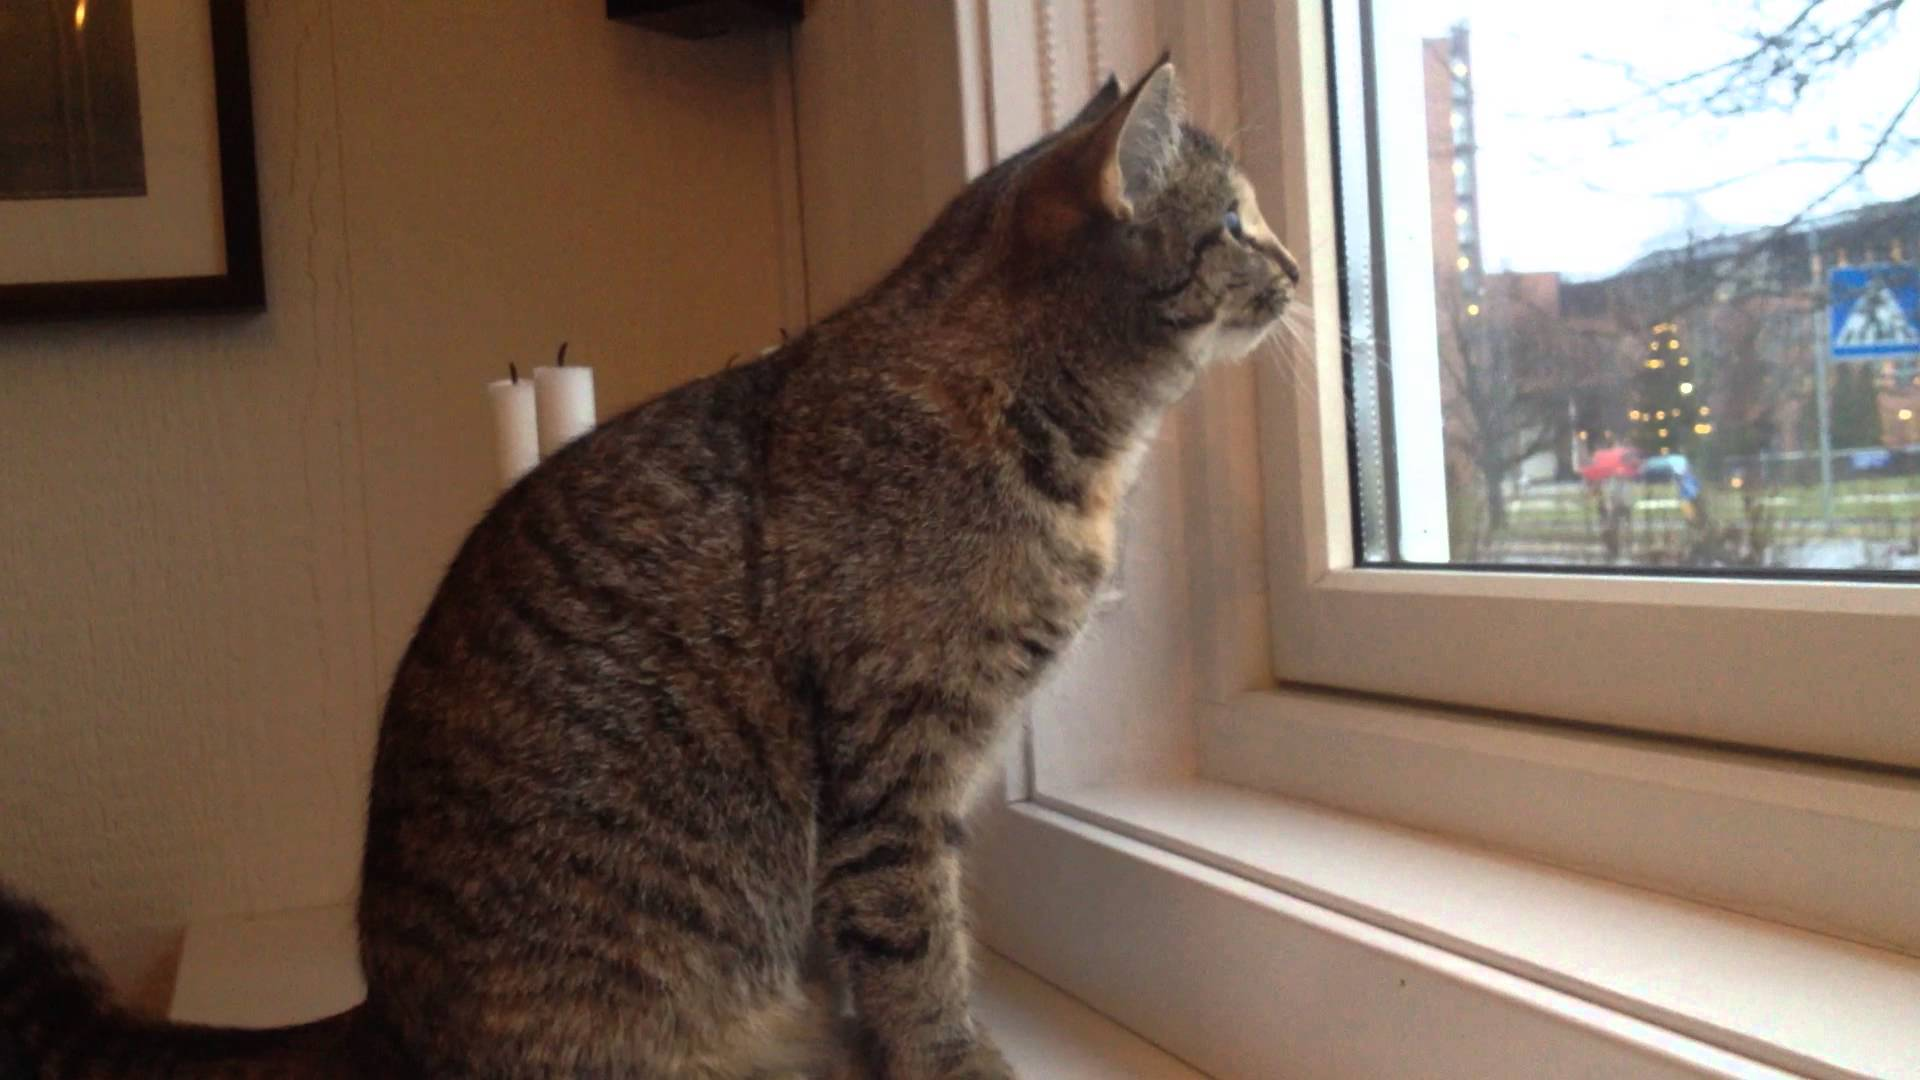 My cat looking at birds trough the window - YouTube